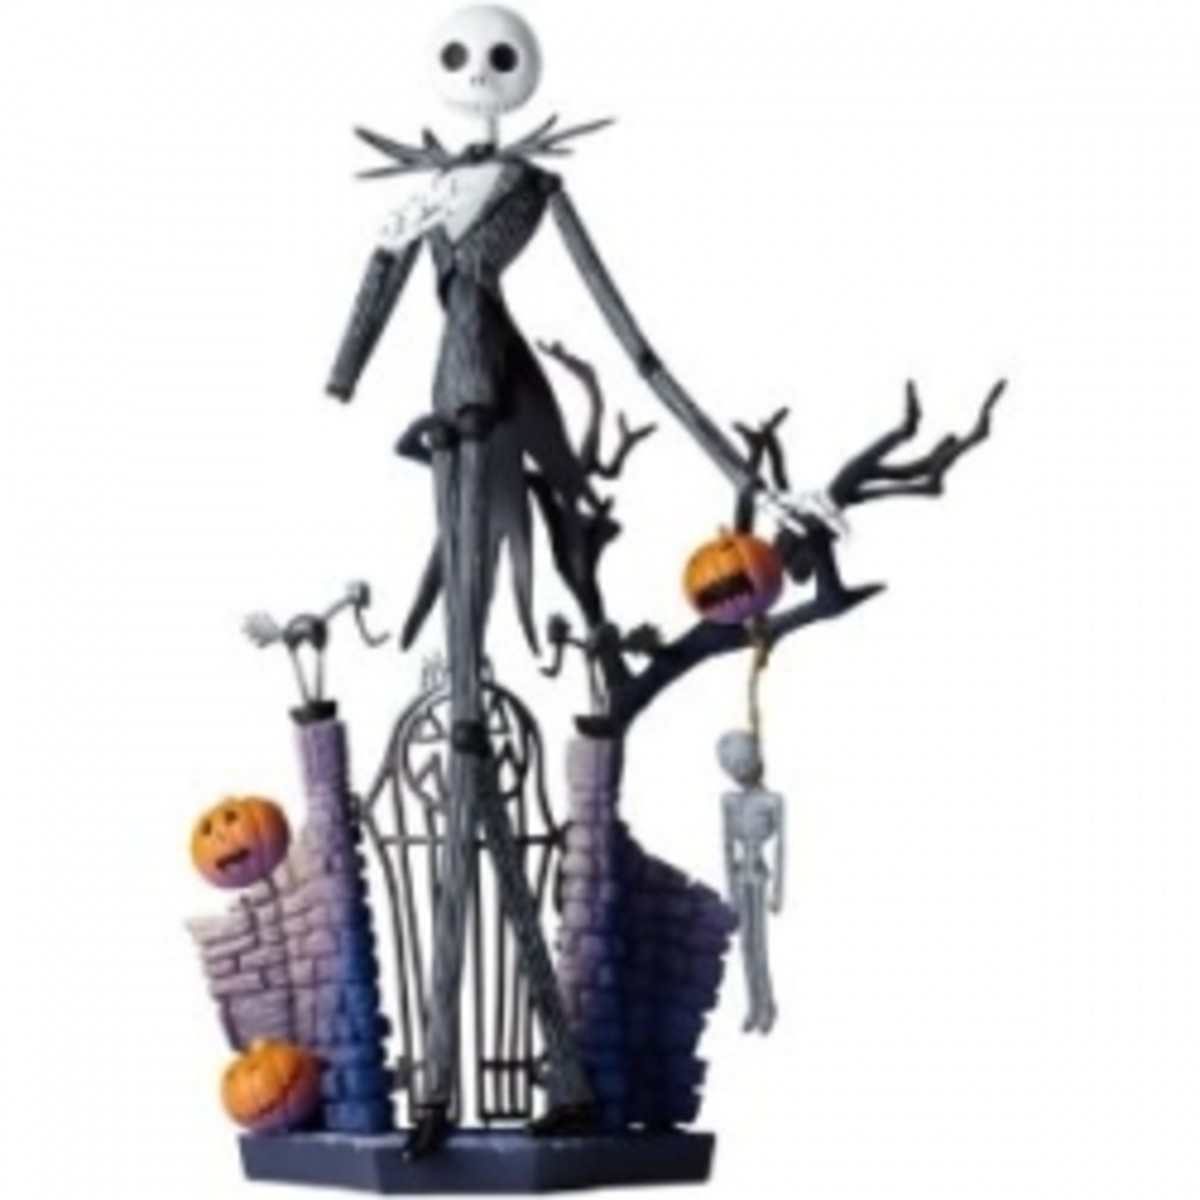 Nightmare Before Christmas Revoltech SciFi Super Poseable Action Figure #005 Jack Skellington